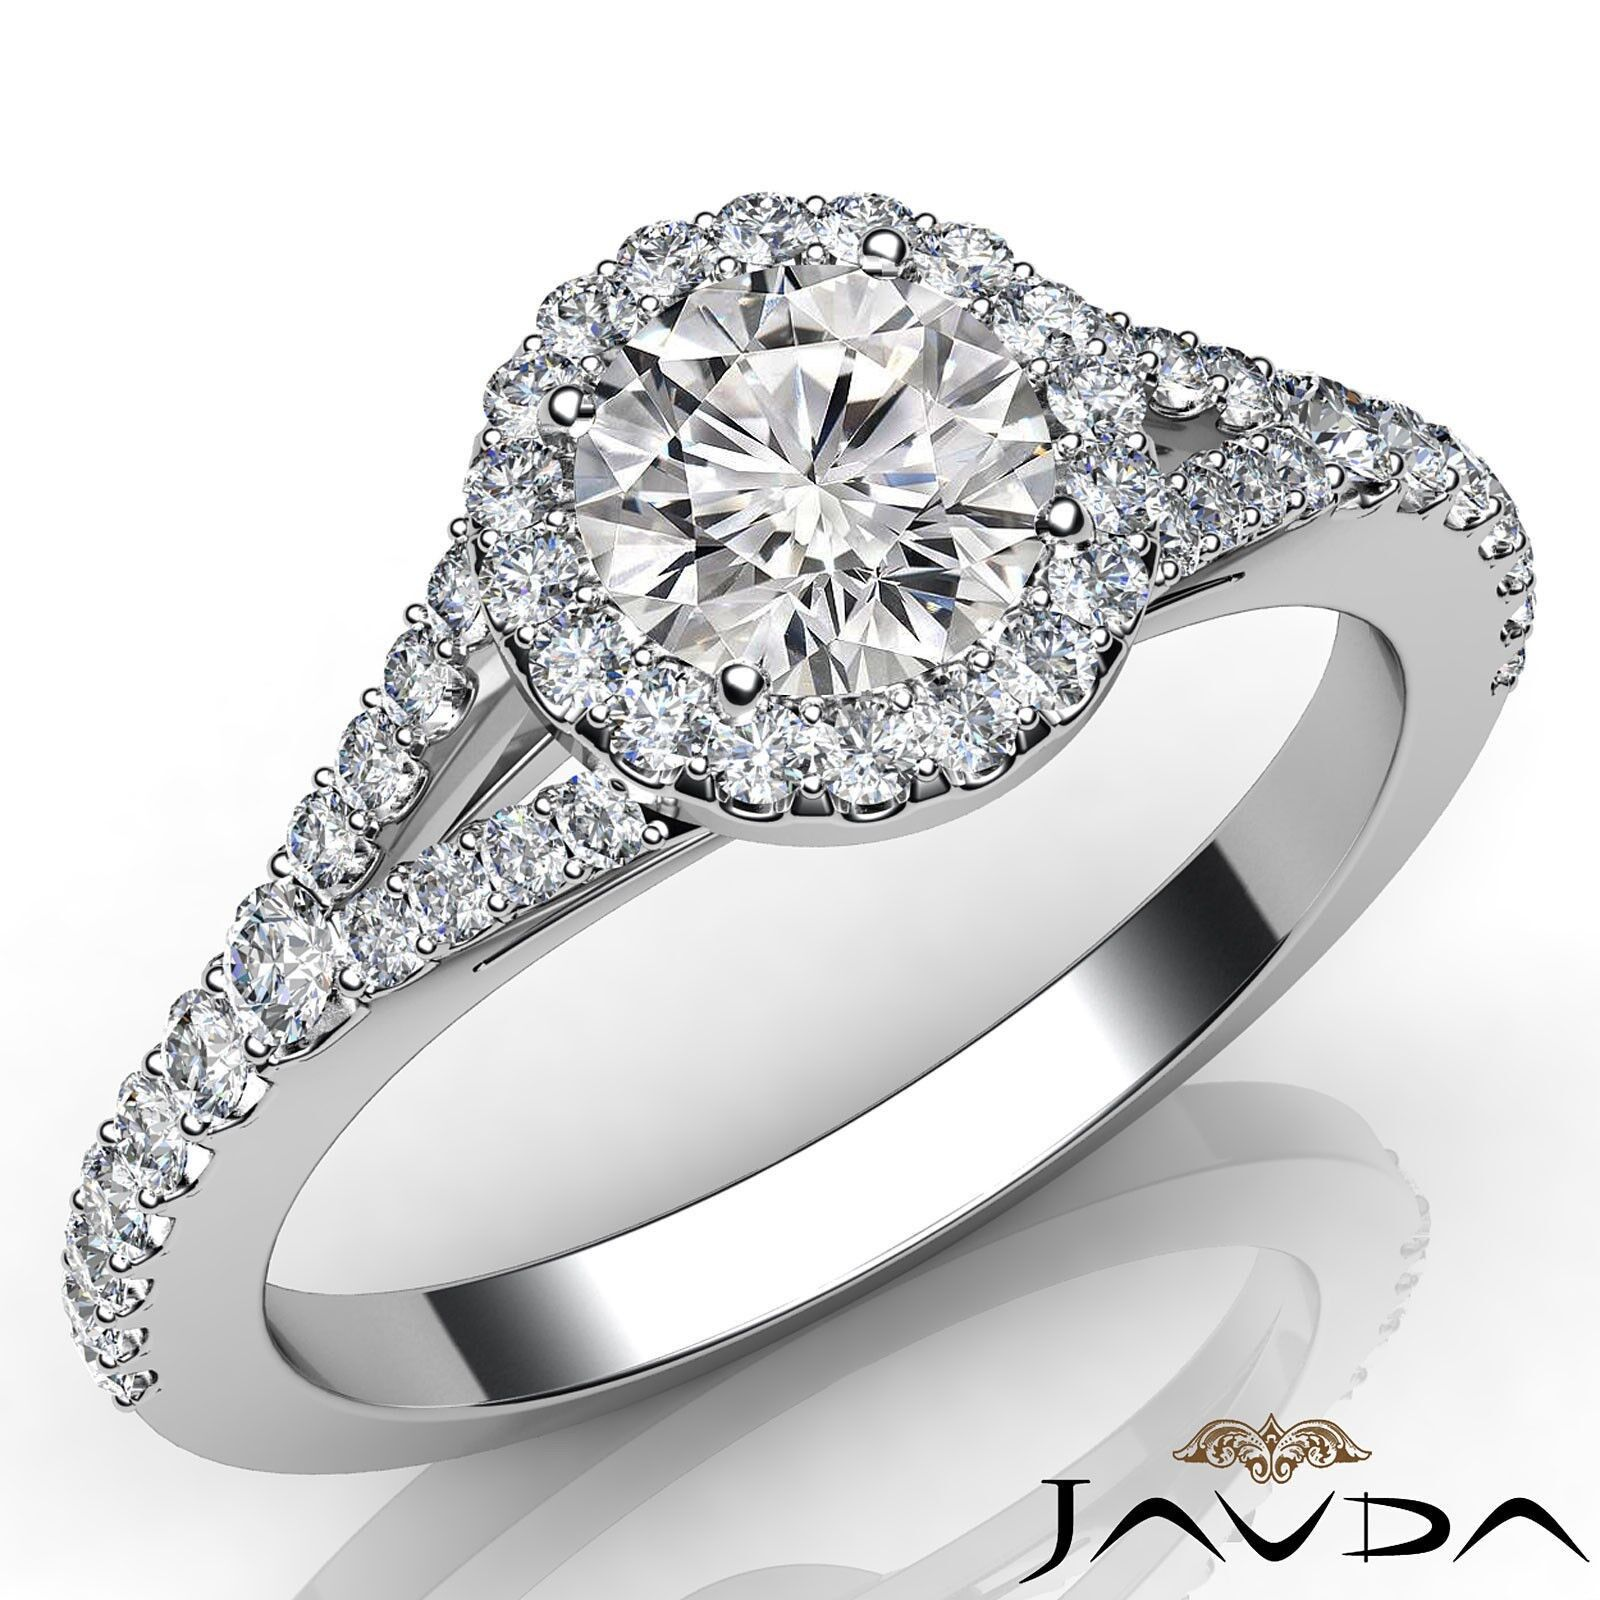 French U Pave Split Shank Halo Round Cut Diamond Engagement Ring GIA E VVS1 1 Ct